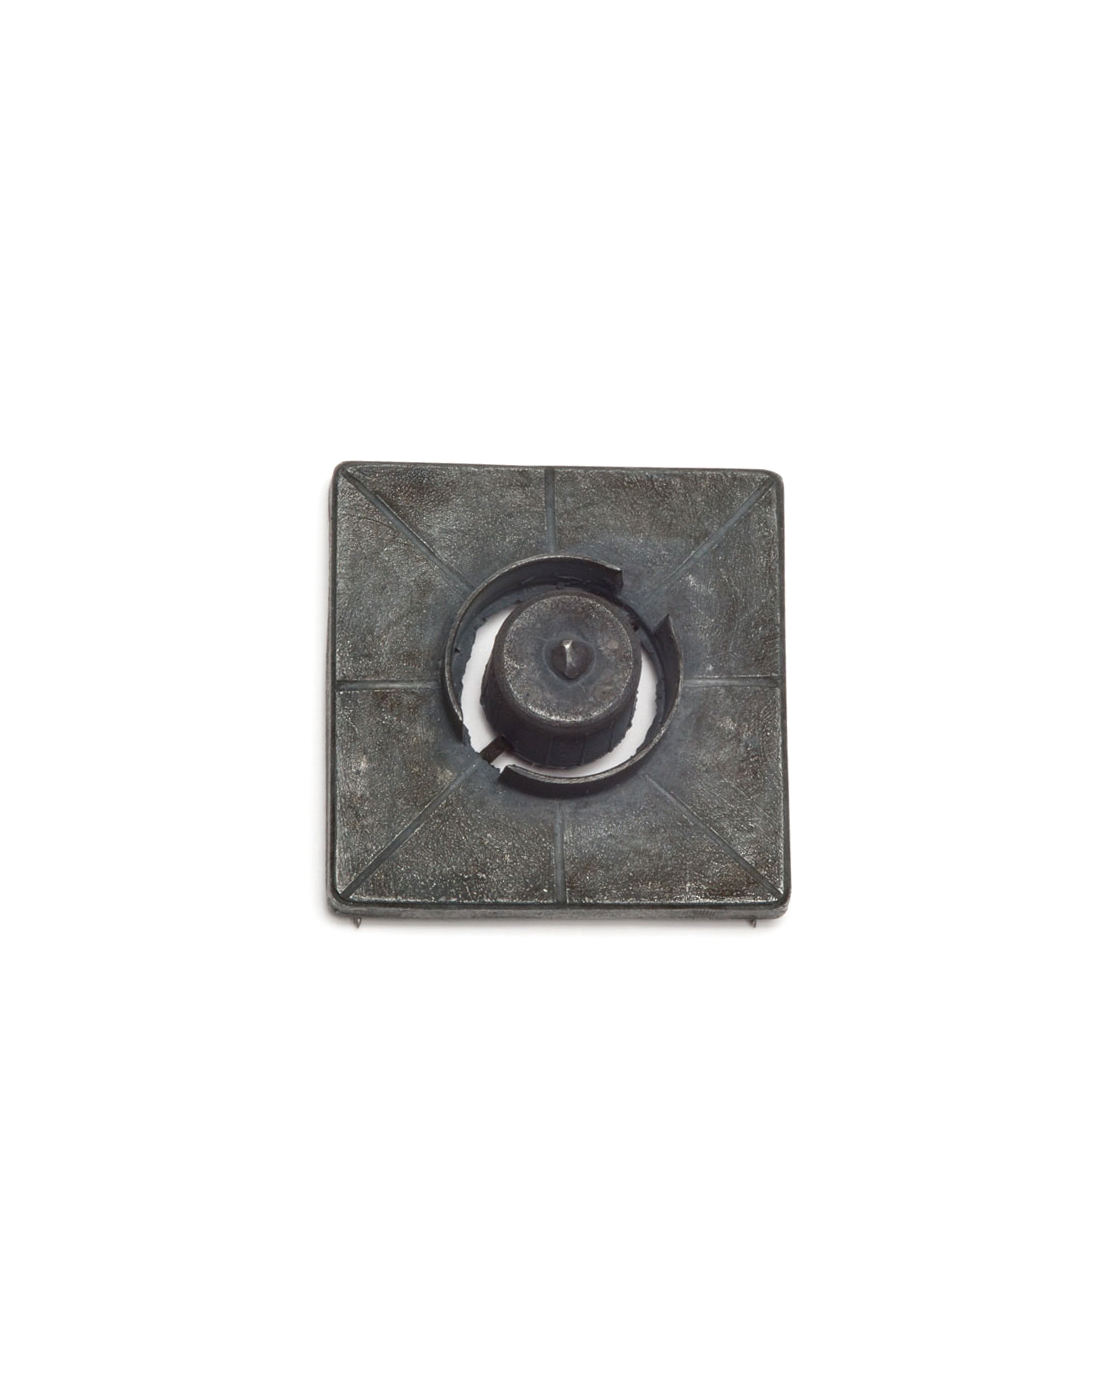 Winfried Krüger, untitled, 2007, brooch; oxidised silver, 60 x 60 x 25 mm, €970